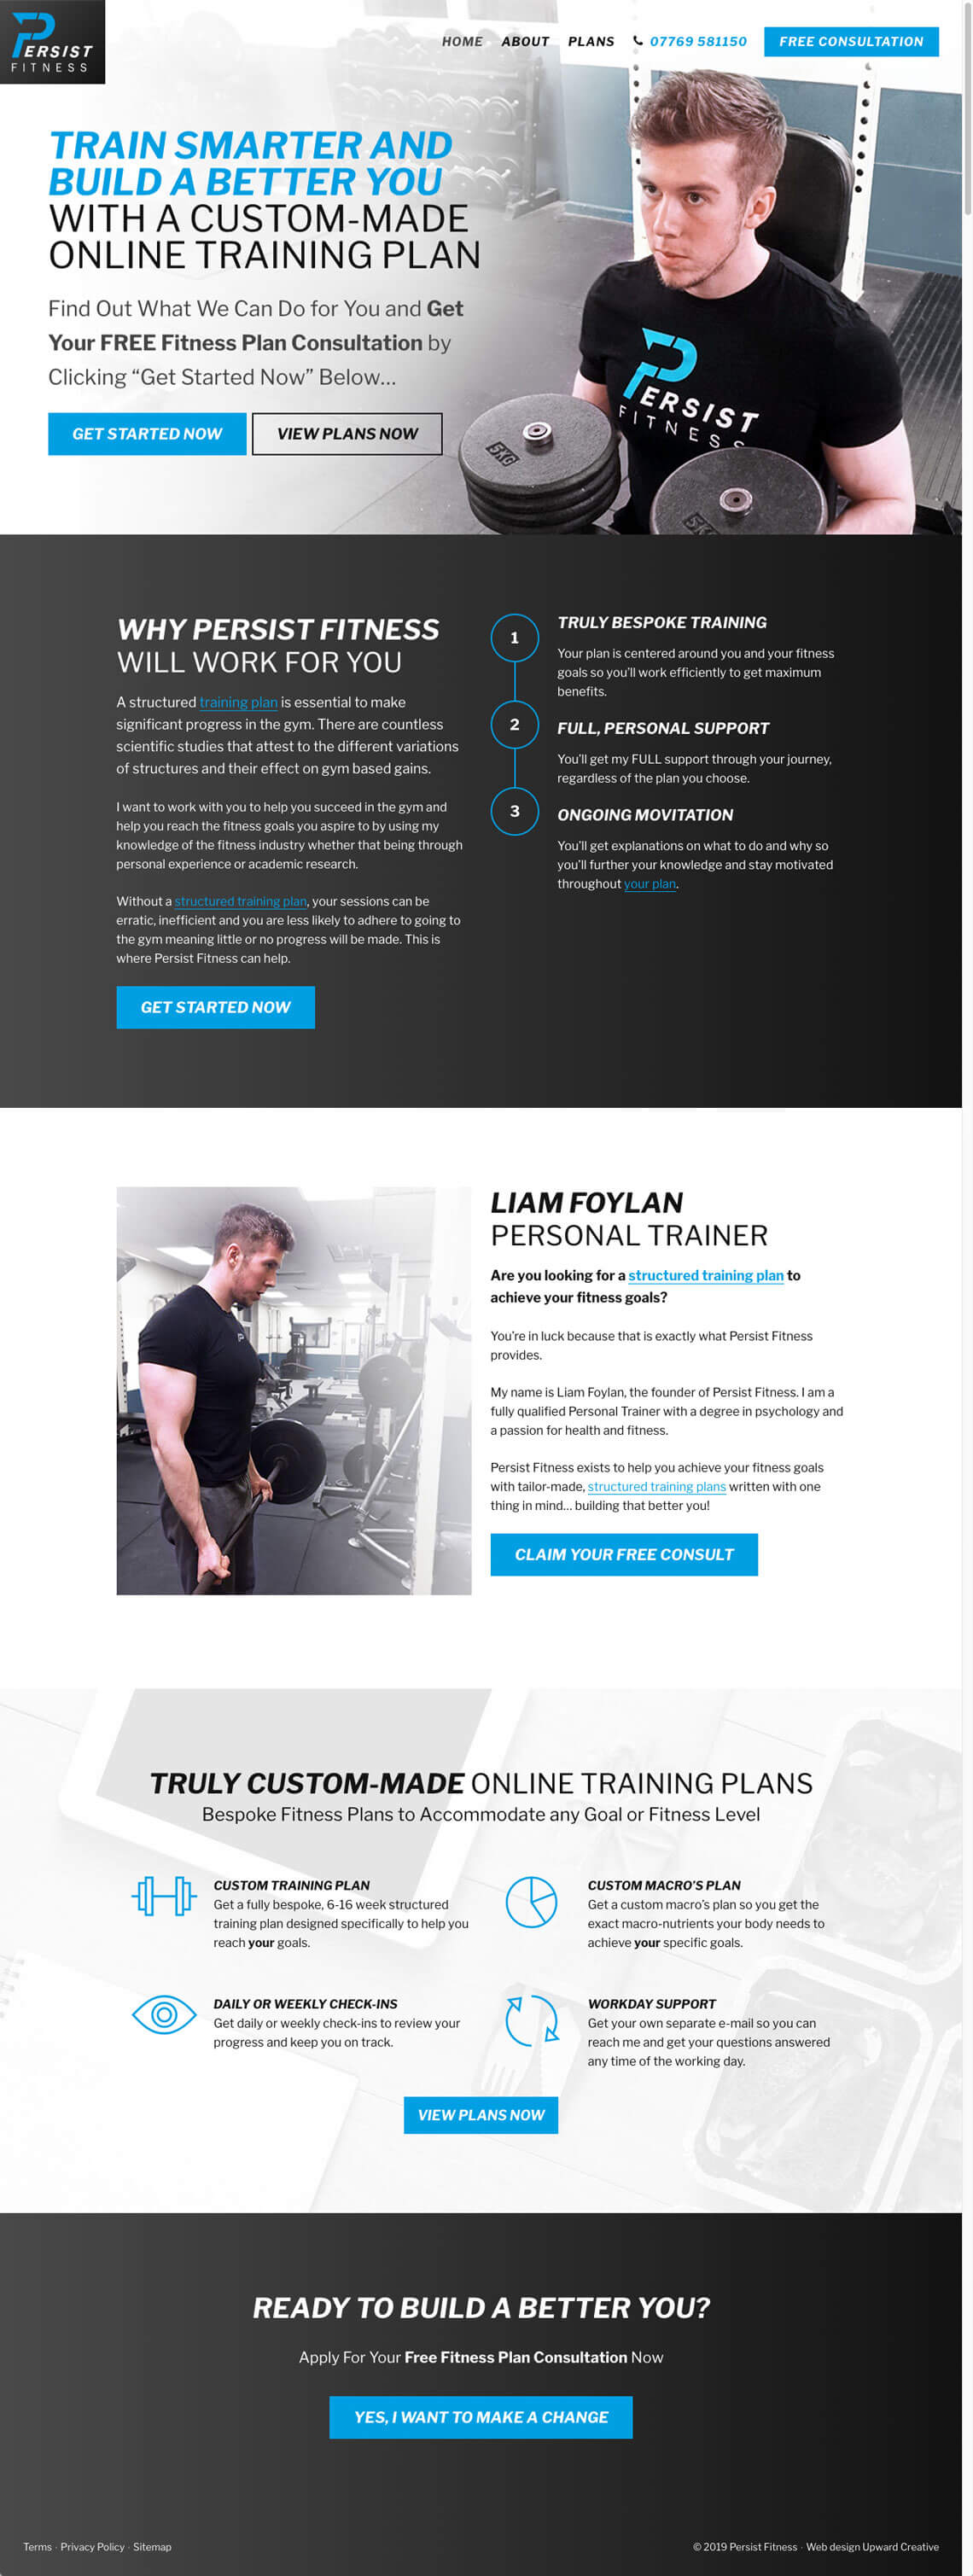 Persist Fitness website homepage design